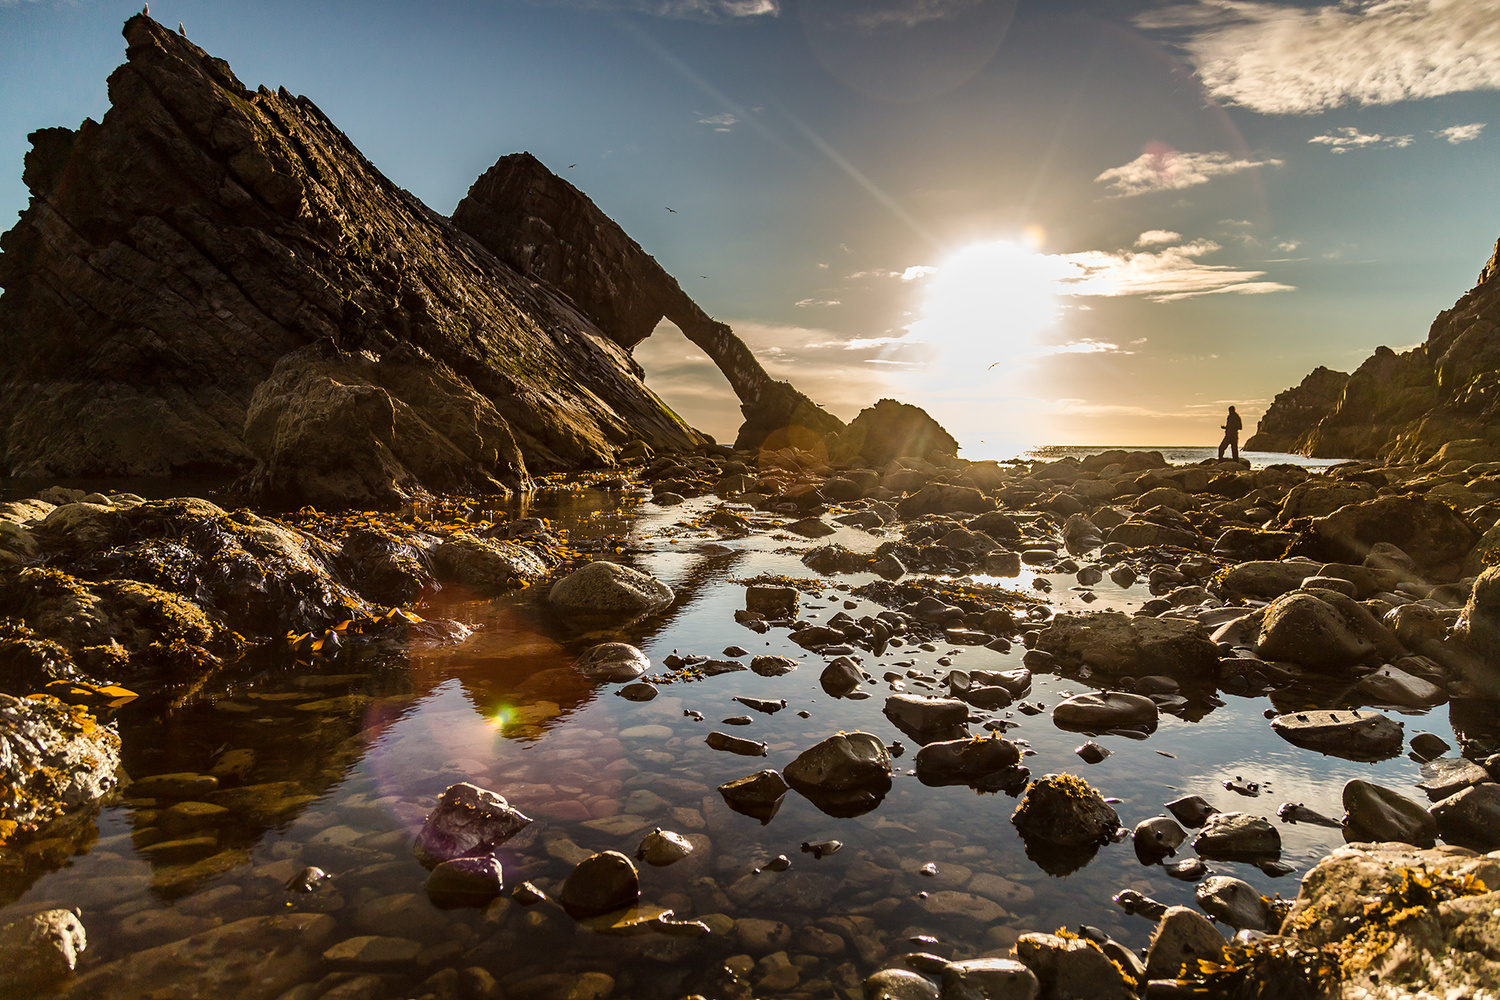 Bow and Fiddle Rock, Scotland by Imran Mirza